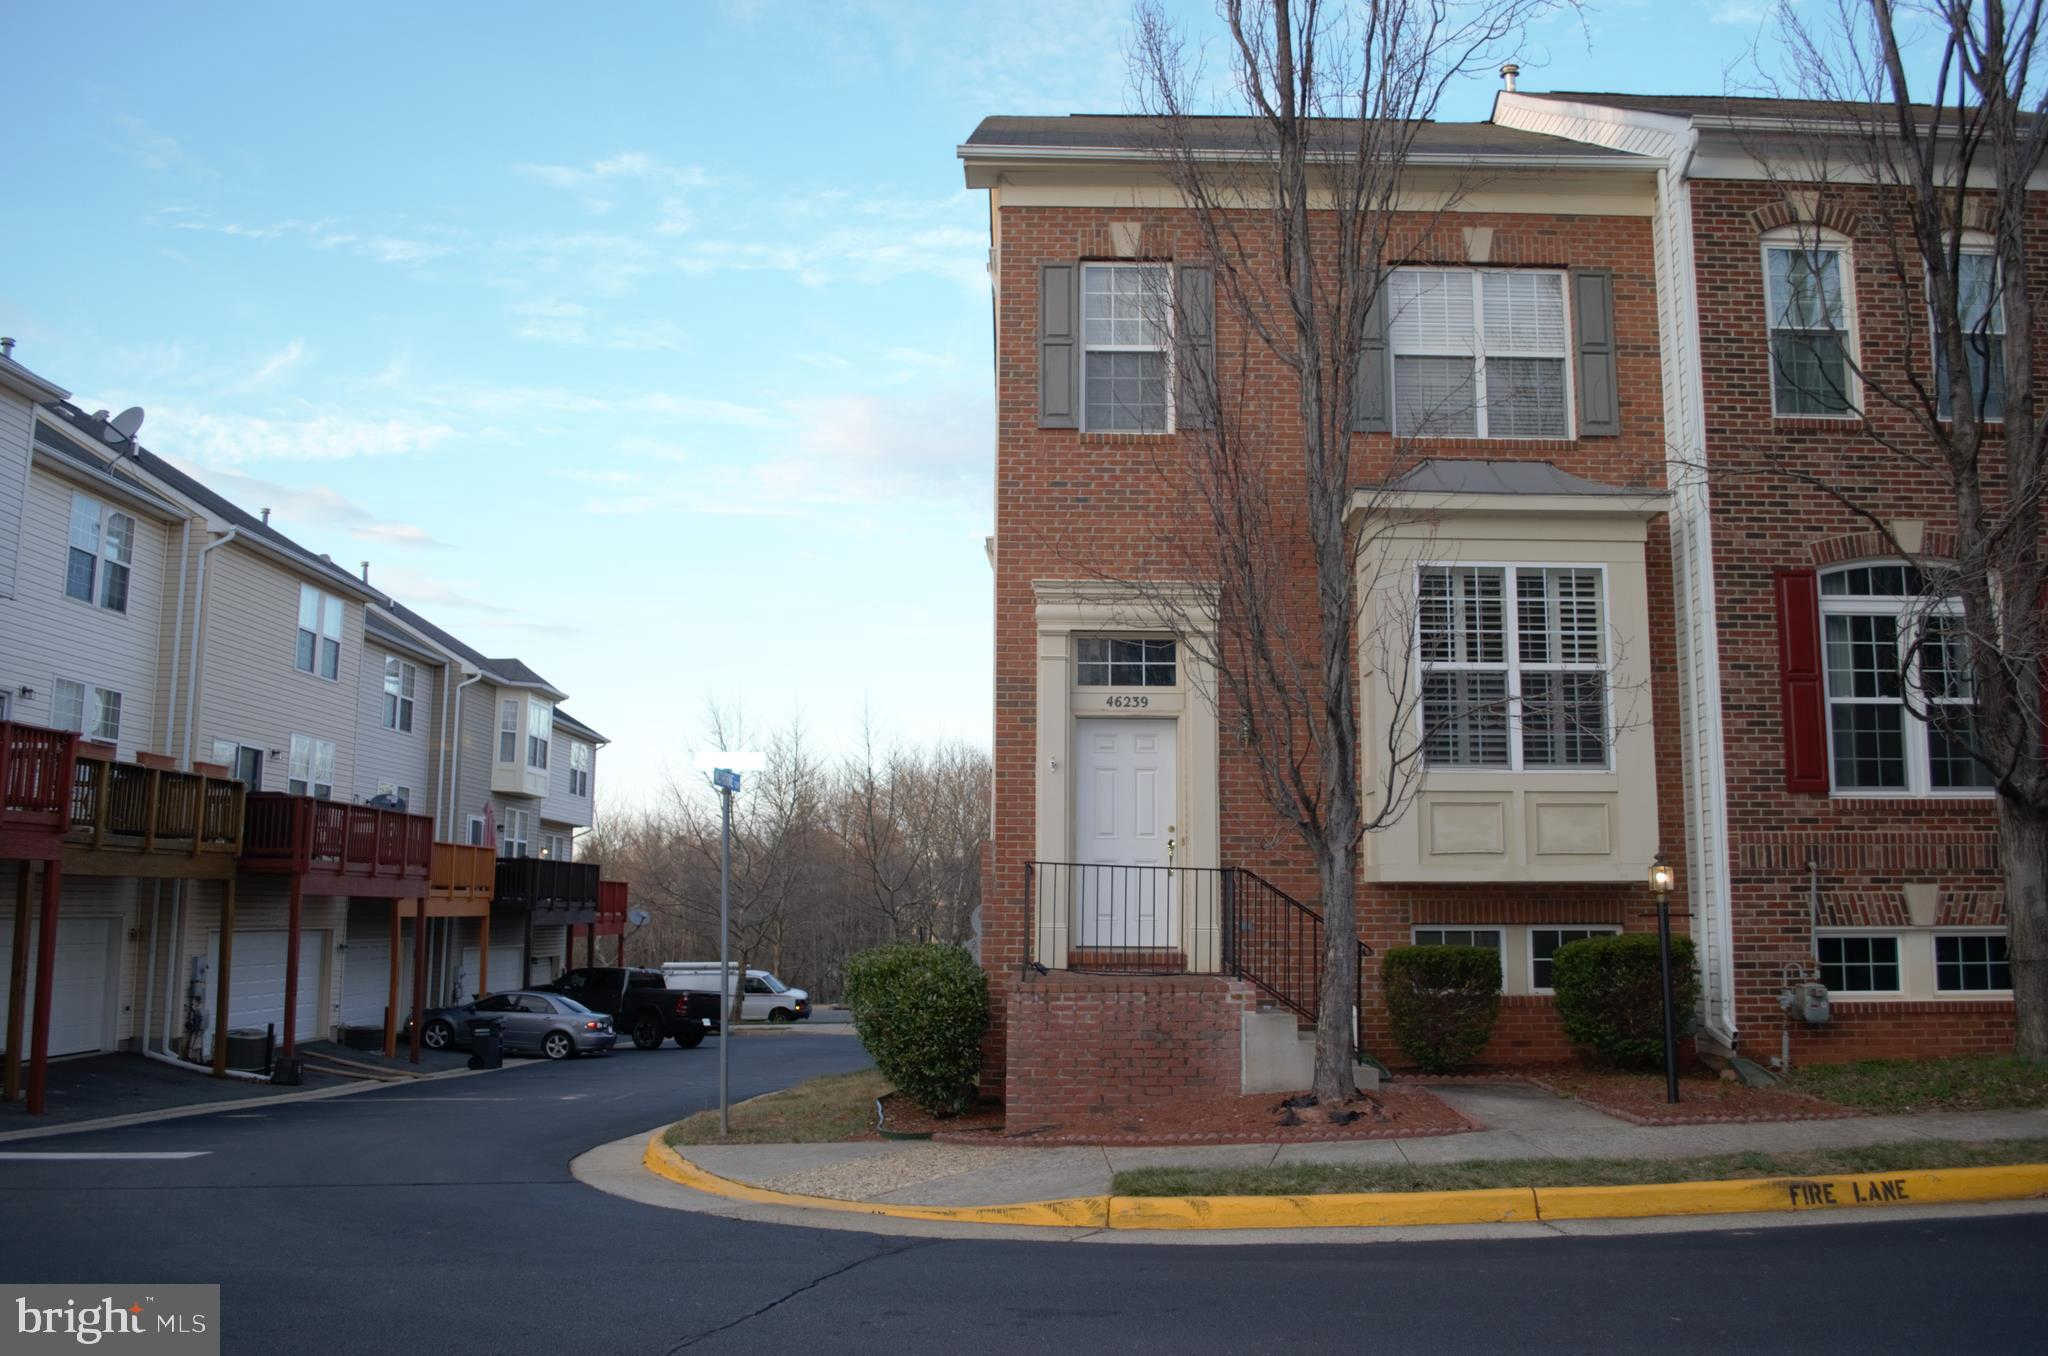 Another Property Rented - 46239 Milthorn Terrace, Sterling, VA 20165